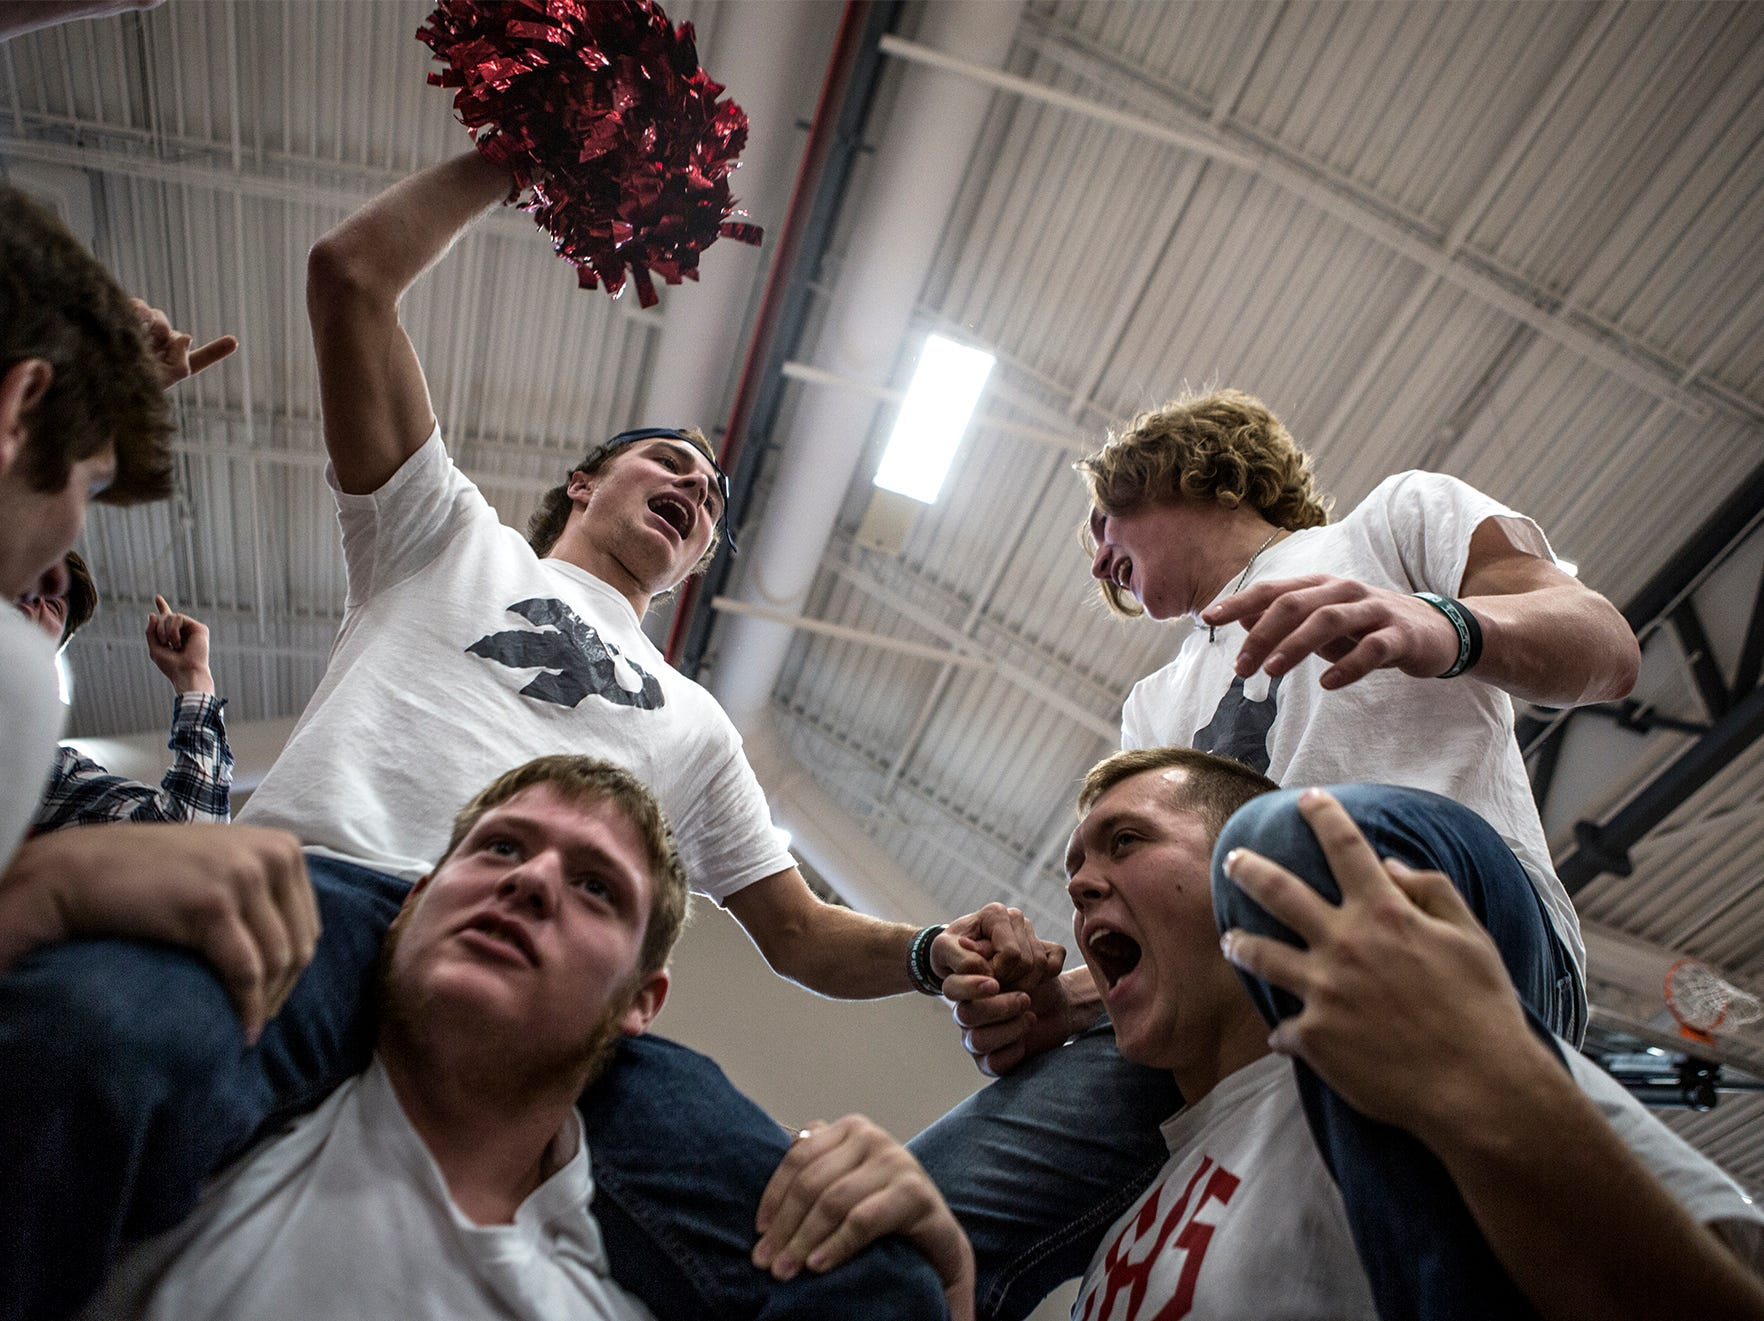 The senior Johnstown football players, along with fellow senior students cheer as loud as they can during a pep rally Friday morning ahead of the teams' game state championship game Saturday. Johnstown will take on Orville at 3 pm Canton.